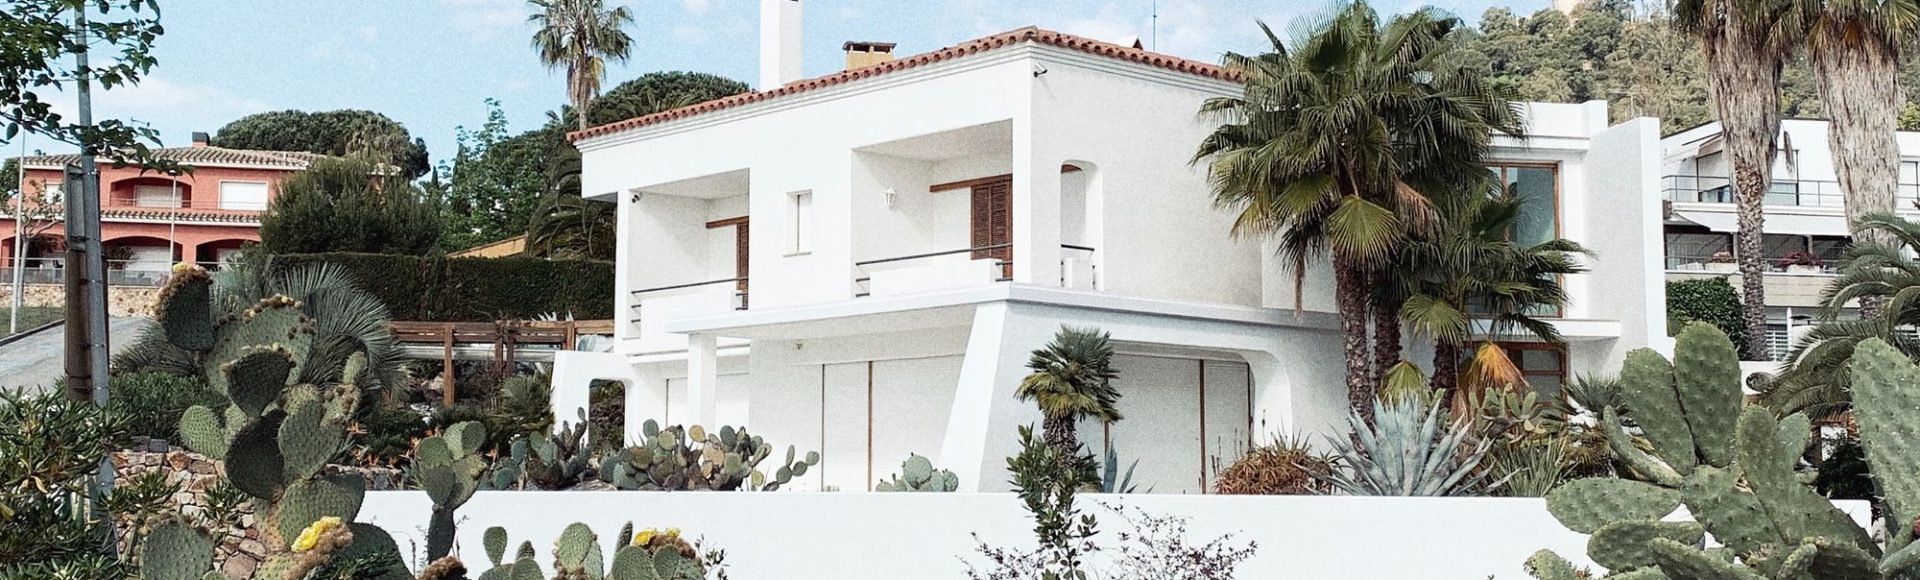 Insuring Your Holiday Home in Spain